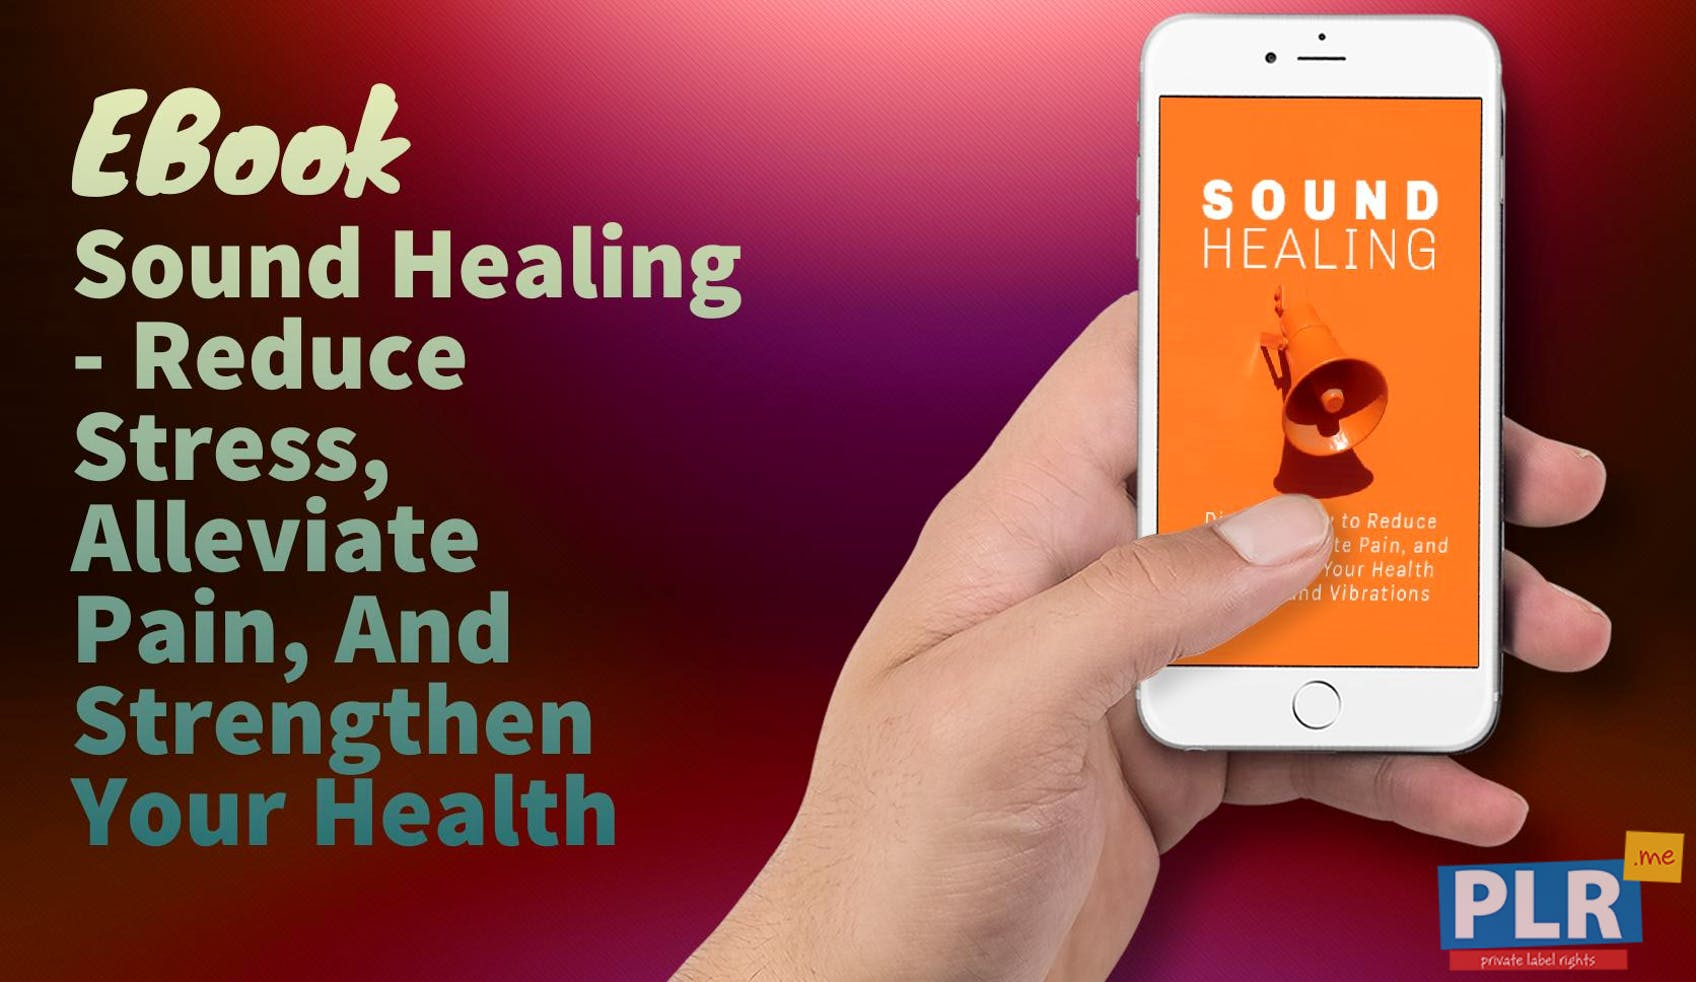 Sound Healing - Reduce Stress, Alleviate Pain, And Strengthen Your Health